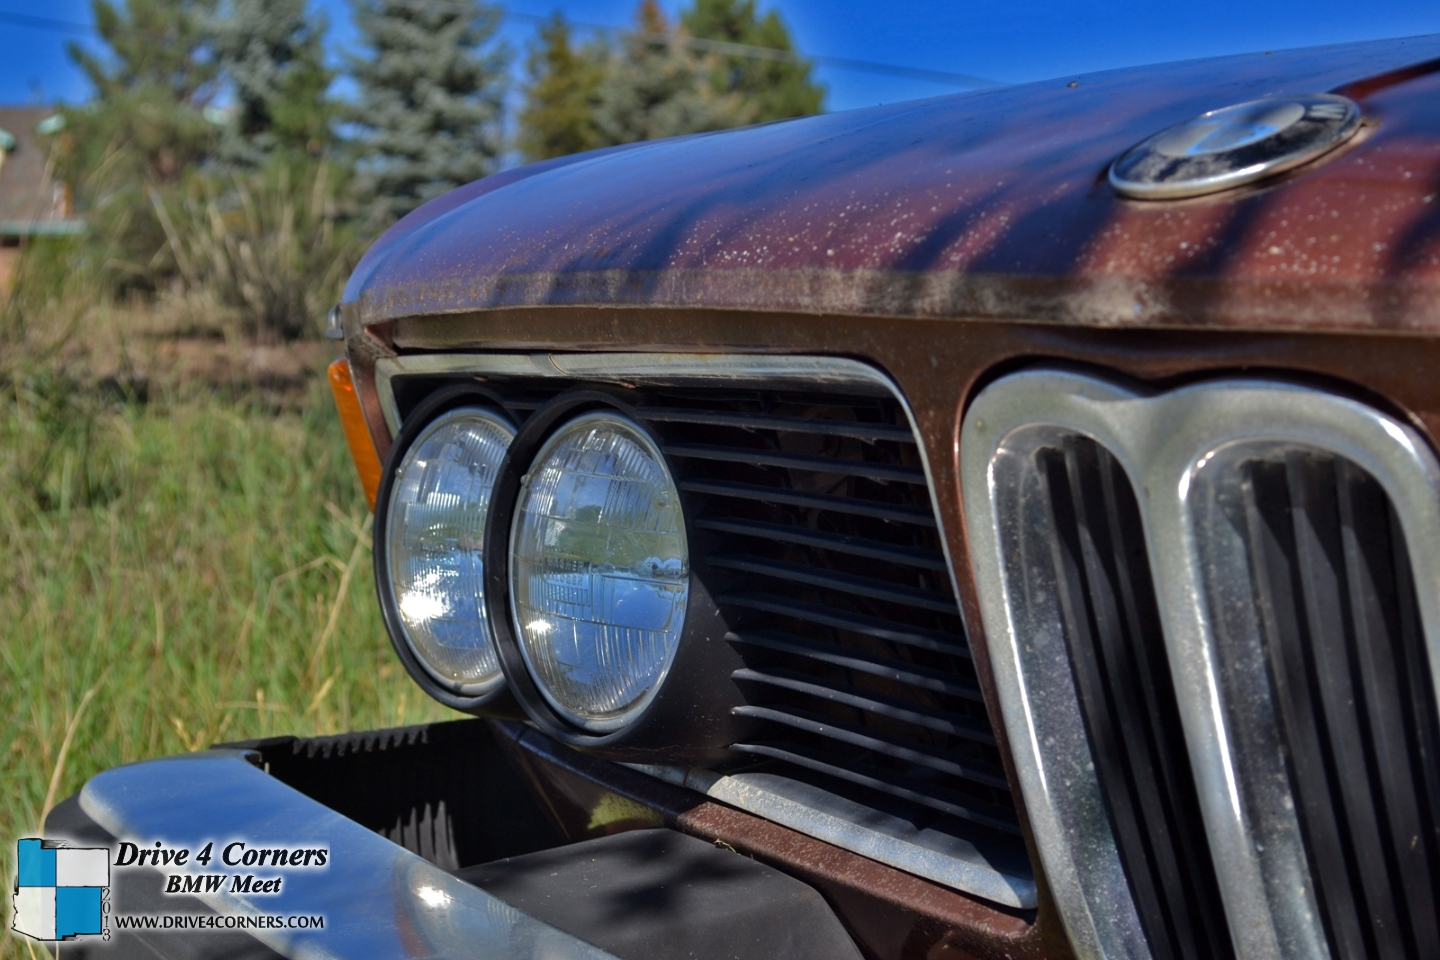 The Brown Bomber Drive 4 Corners Bmw Meet E12 L Jetronic Fuel Injection Systems Schematic Diagram His Favorite Part Of Car Was Engine 3 Liter Injected M30 That Pulled For Restoration A 2 Door Equivalent E9 30csl Coupe